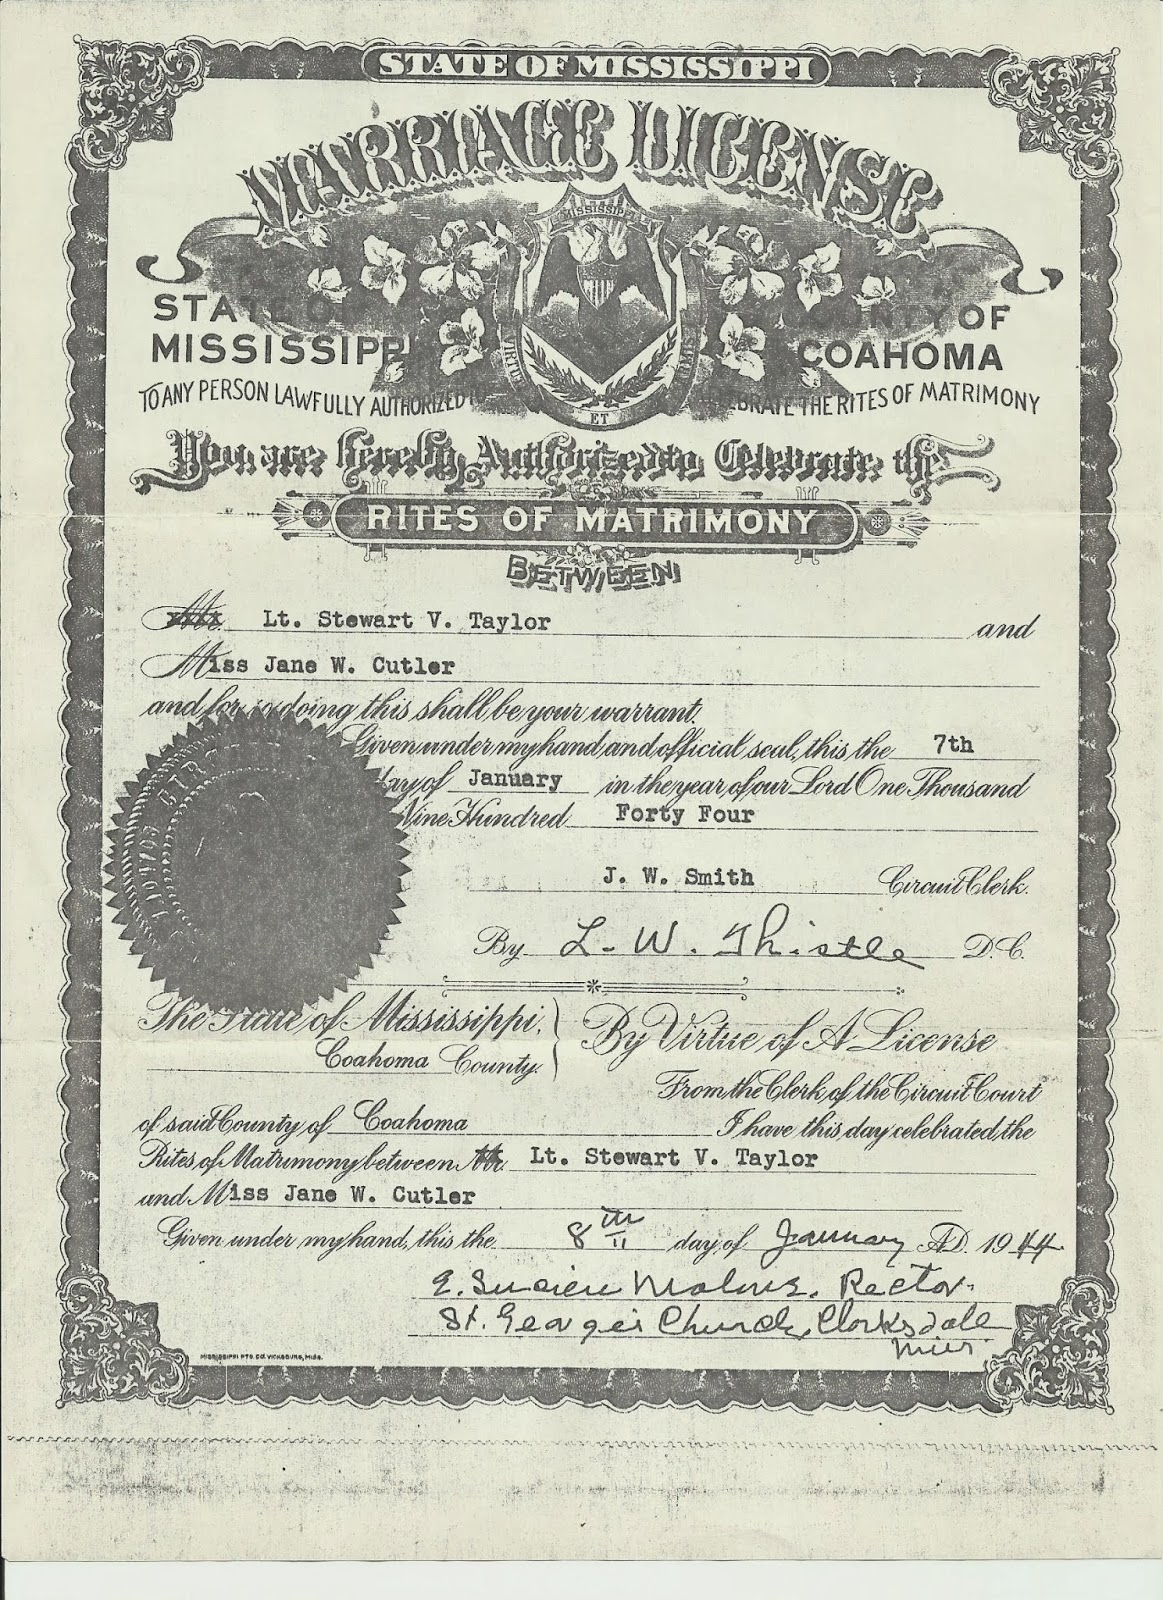 The art of genealogy february 2014 sure enough lt stewart v taylor and miss jane w cutler were married on the 8th day of january 1944 at st georges church in clarksdale mississippi xflitez Image collections